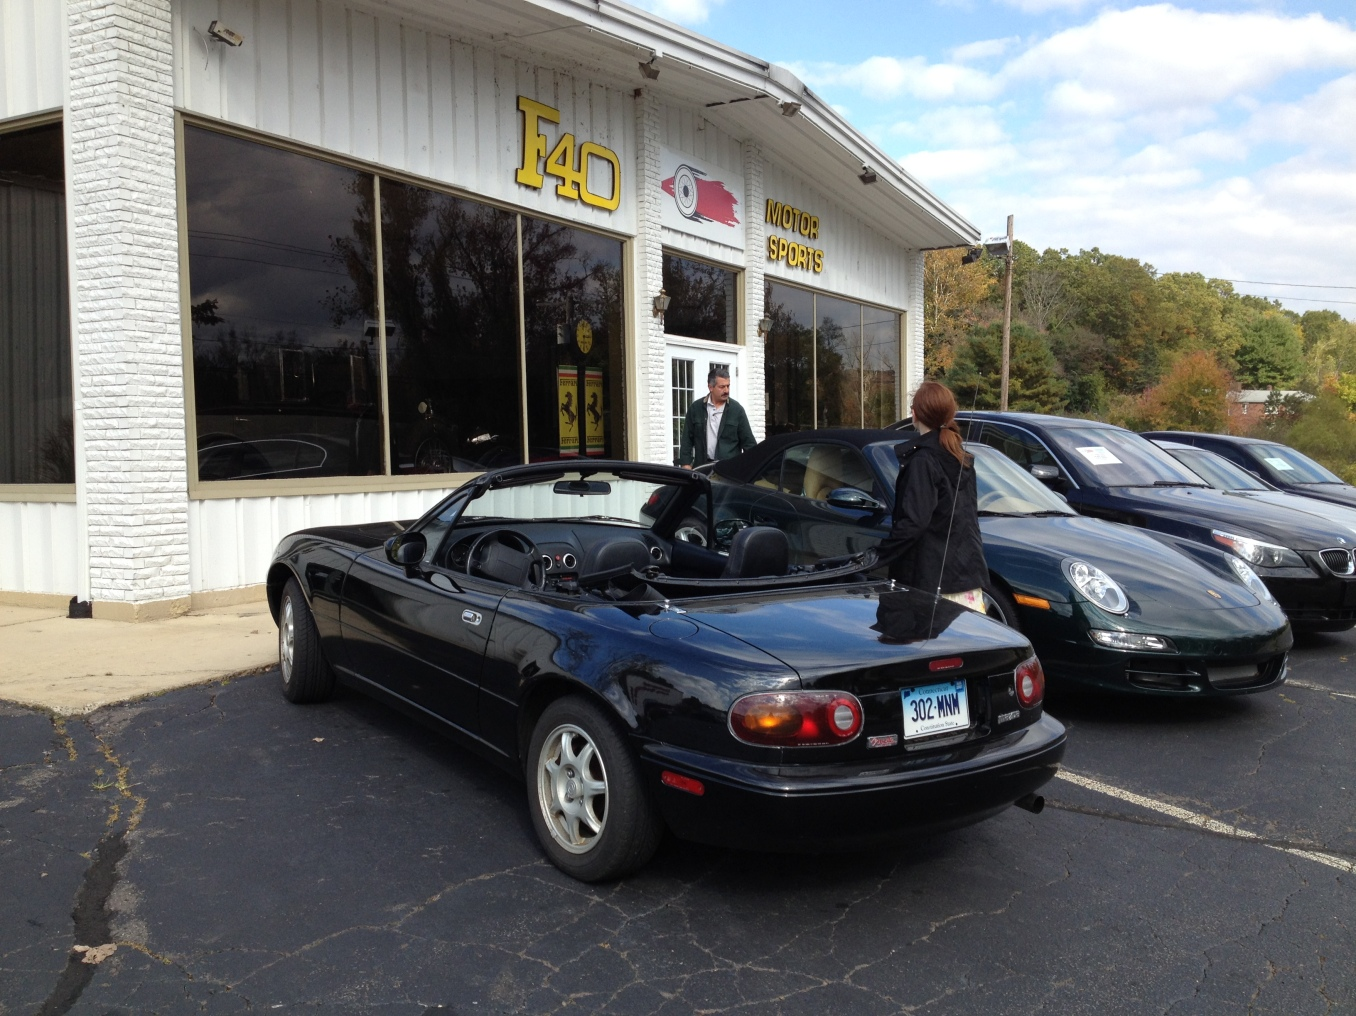 Our first Miata, the 1994 A-Package, pictured ca. 2016 with my daughter outside Wayne Carini's F40 Motorsports in Portland, CT